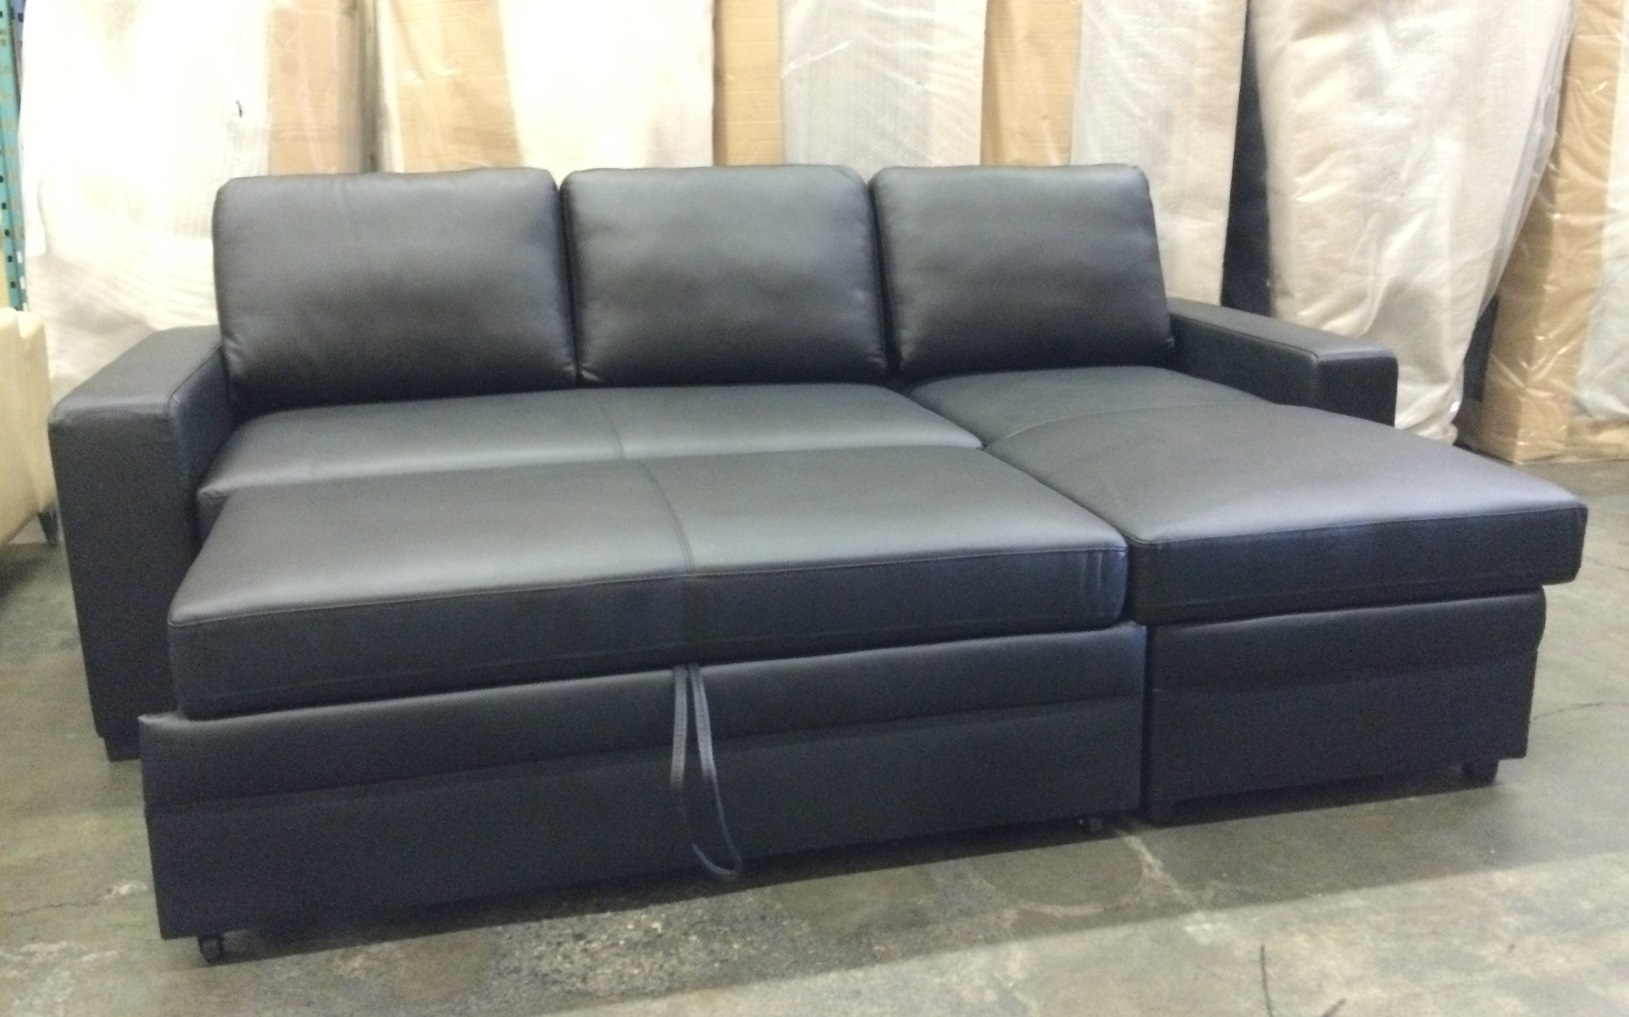 Real Leather Sectional Sofa Bed